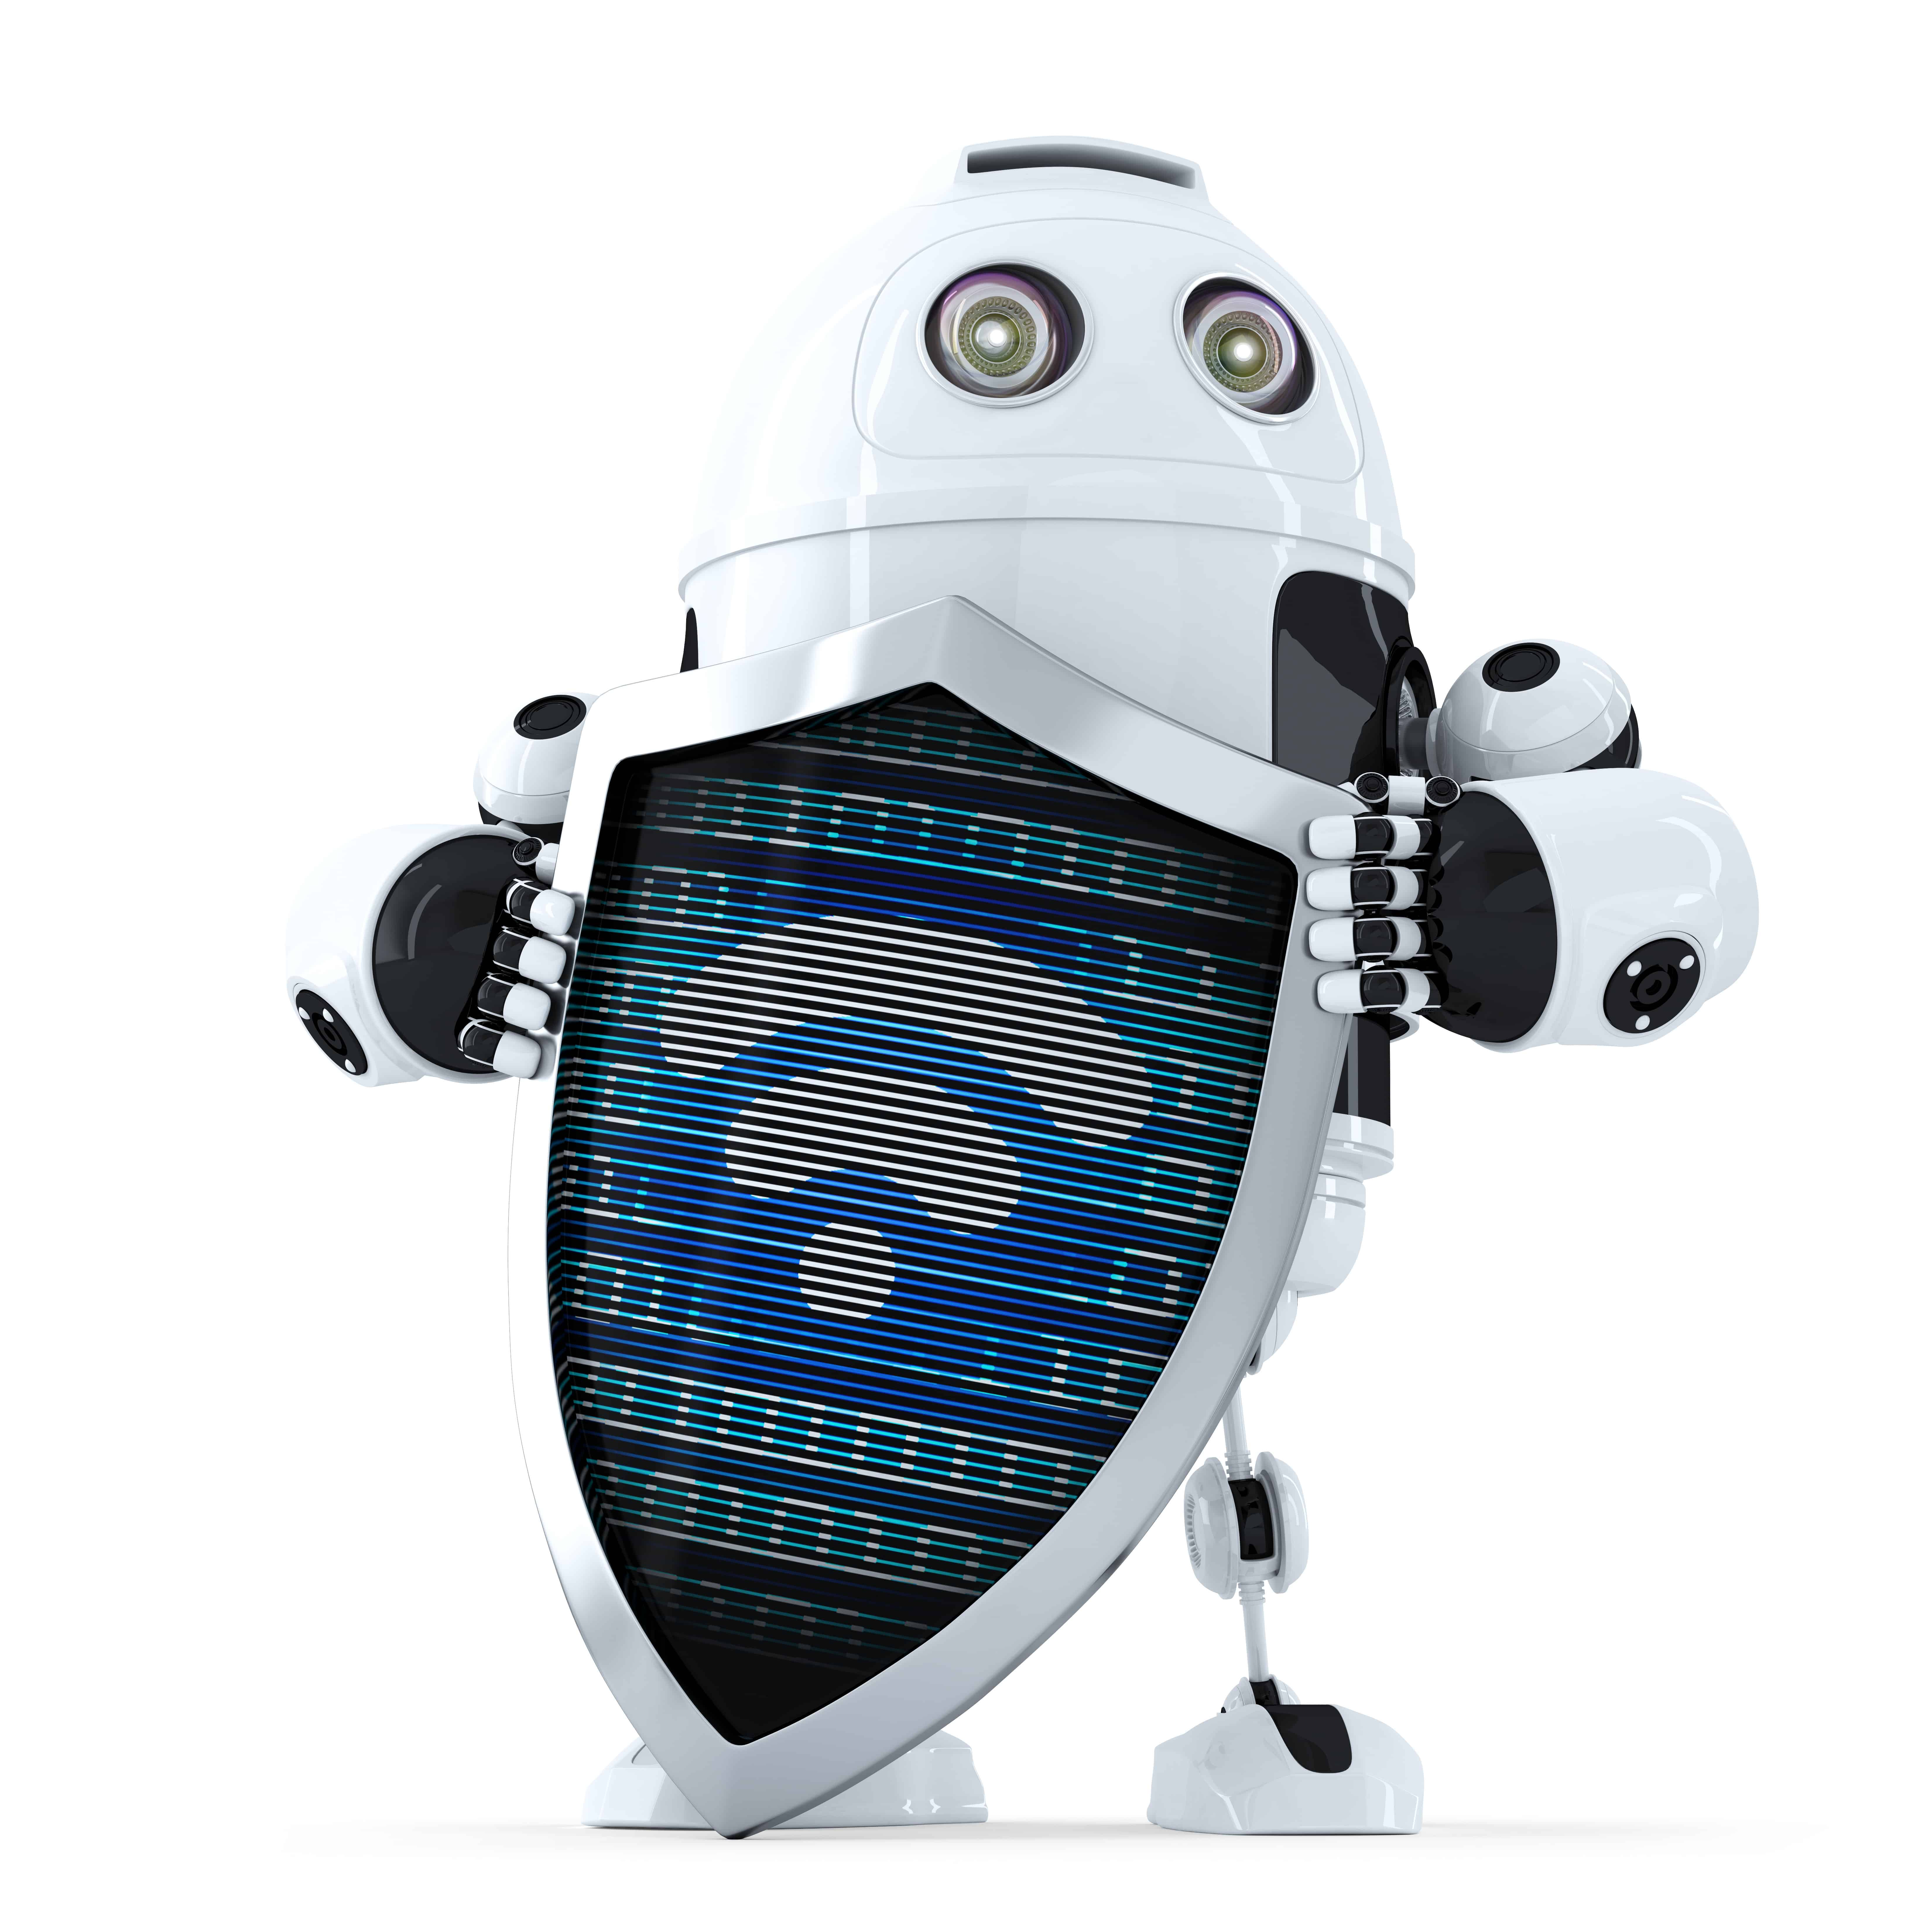 The WPA3 WiFi Security Standard: What Your Enterprise Needs to Know